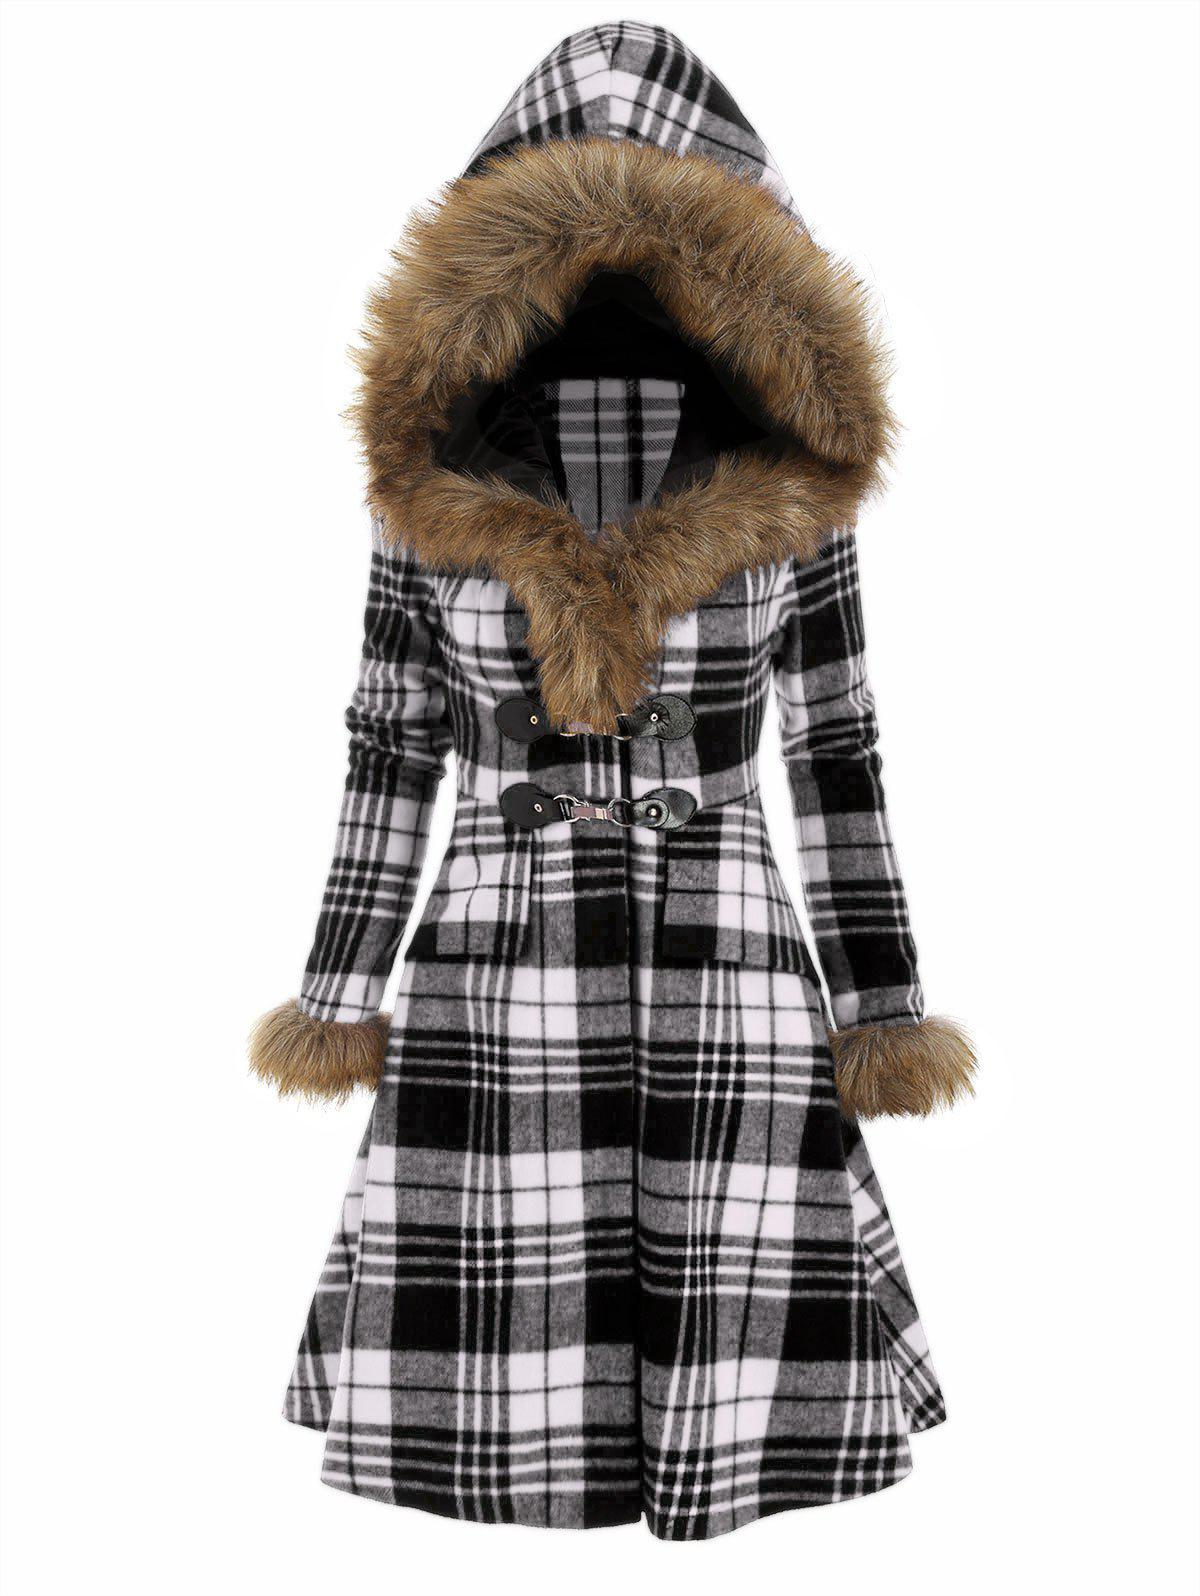 New Plaid Hooded Longline Coat